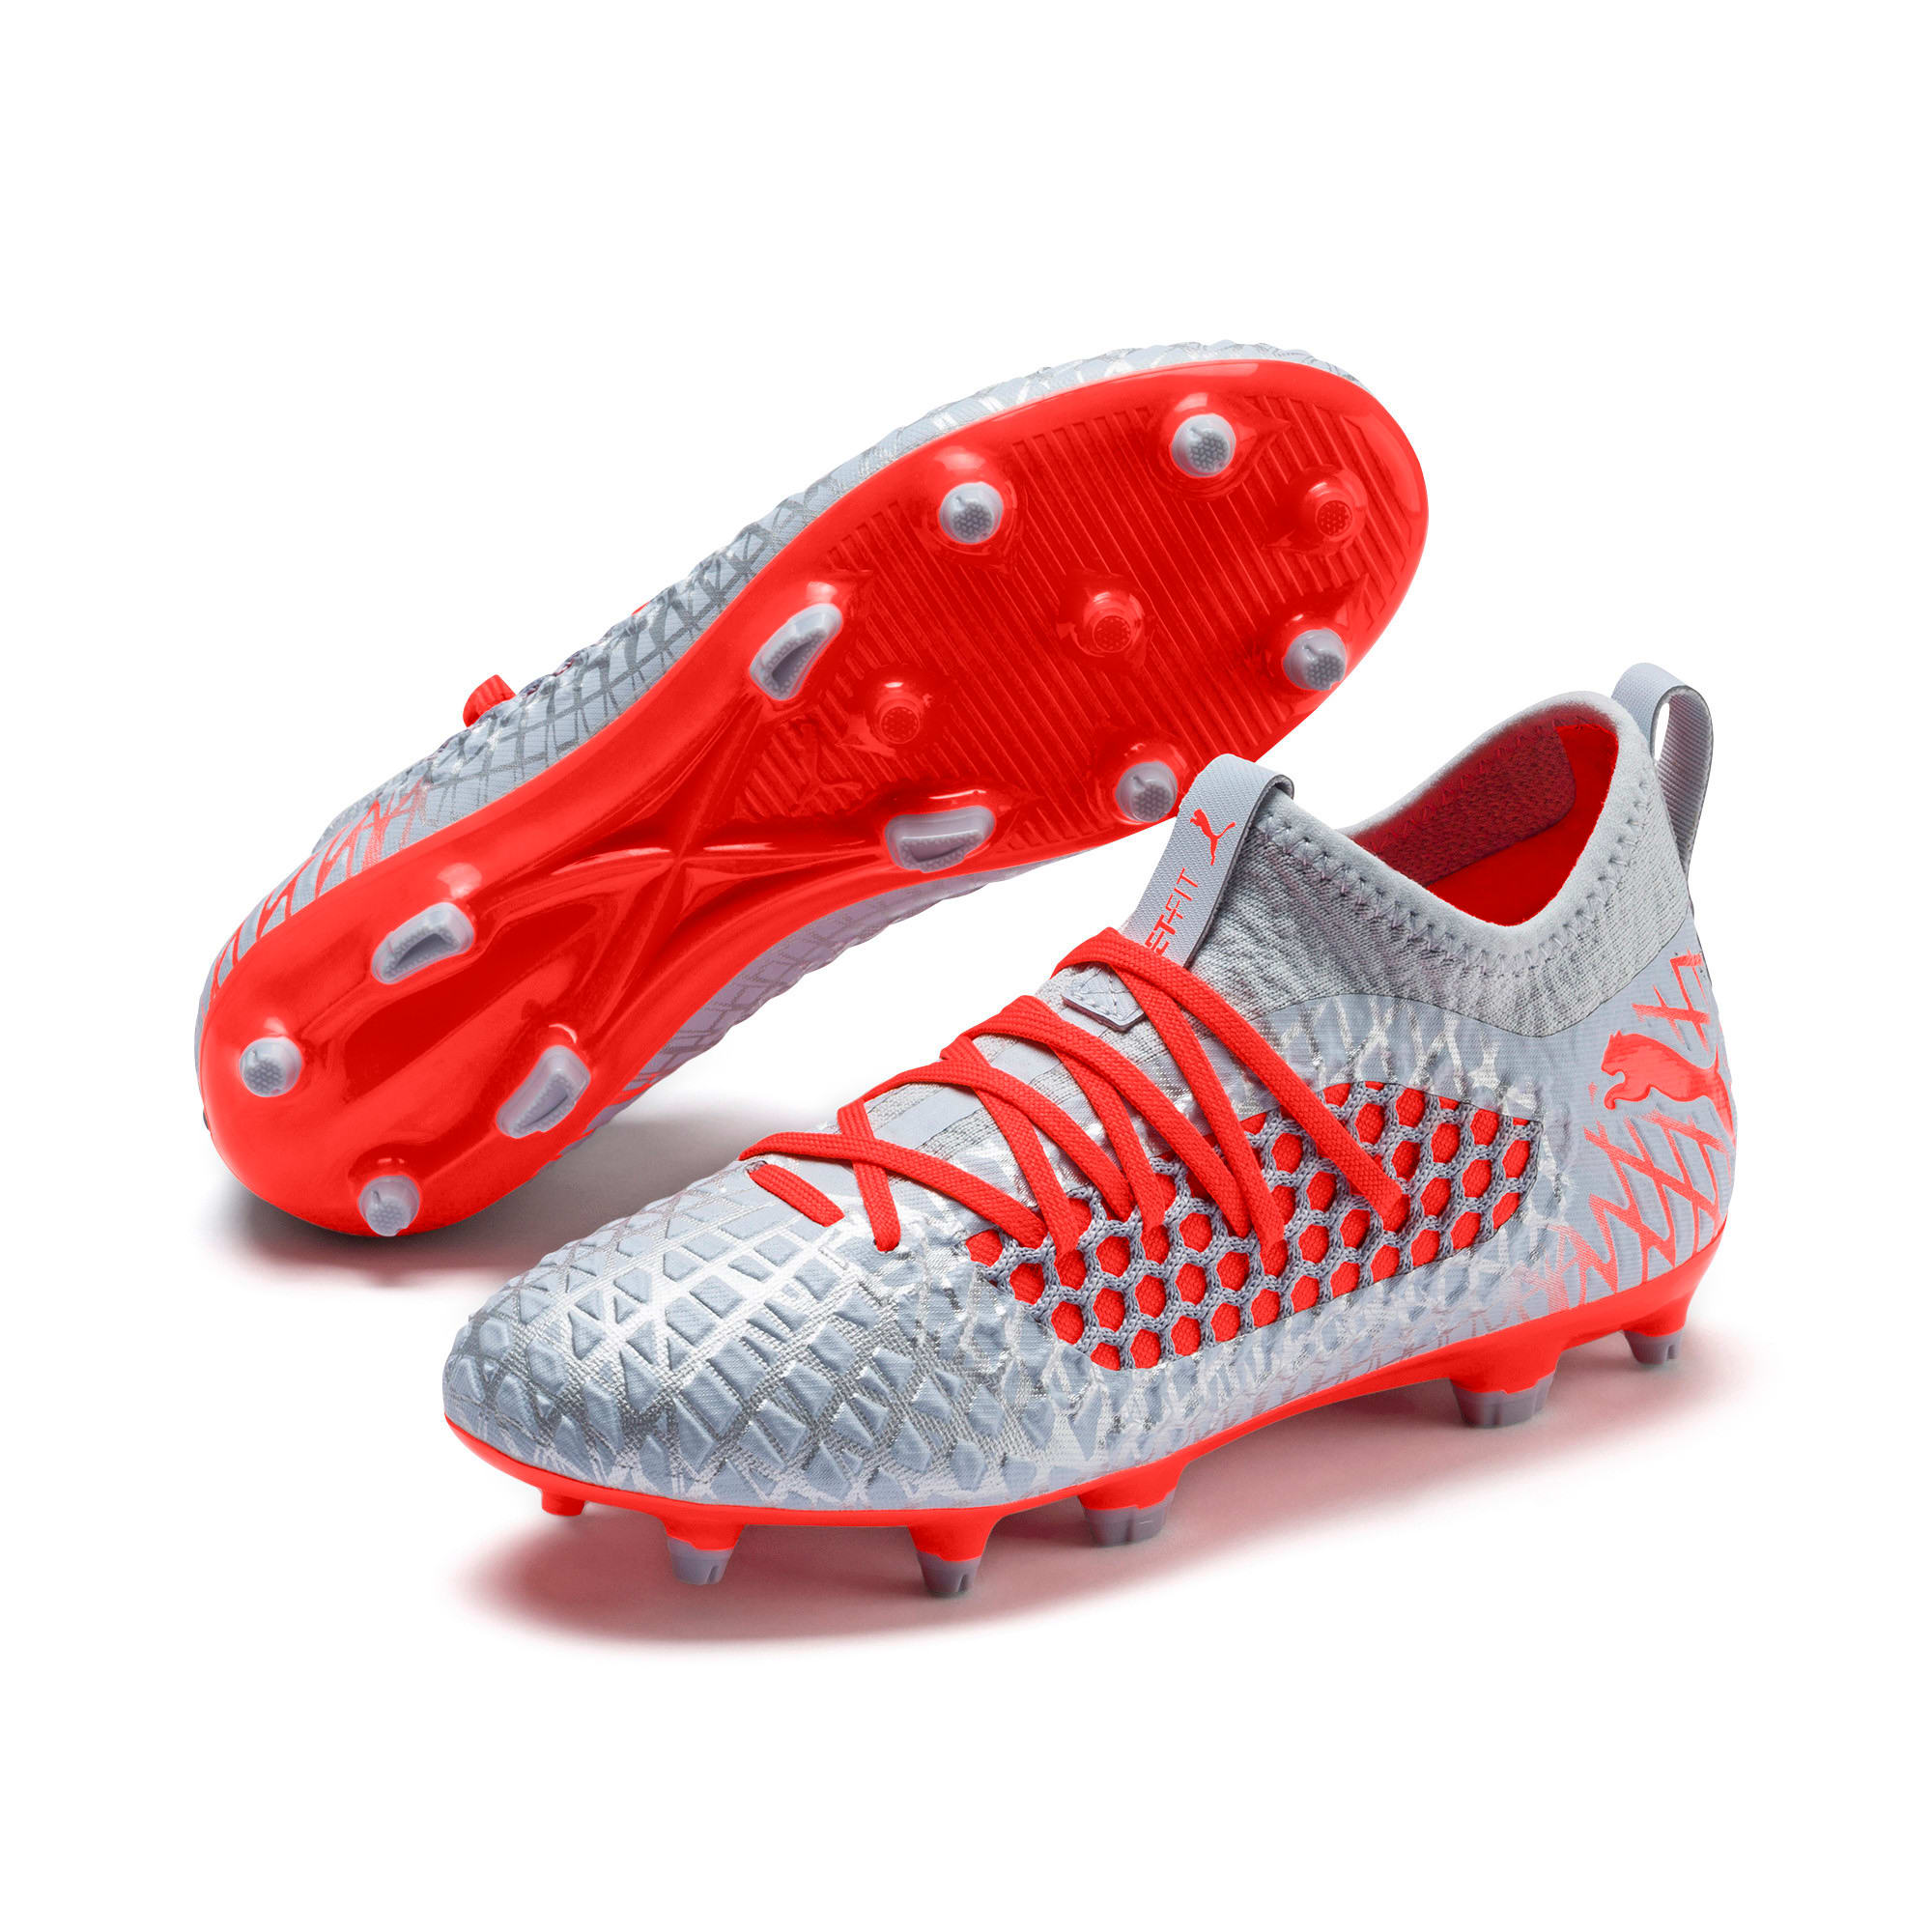 Thumbnail 2 of FUTURE 4.3 NETFIT FG/AG Soccer Cleats JR, Glacial Blue-Nrgy Red, medium